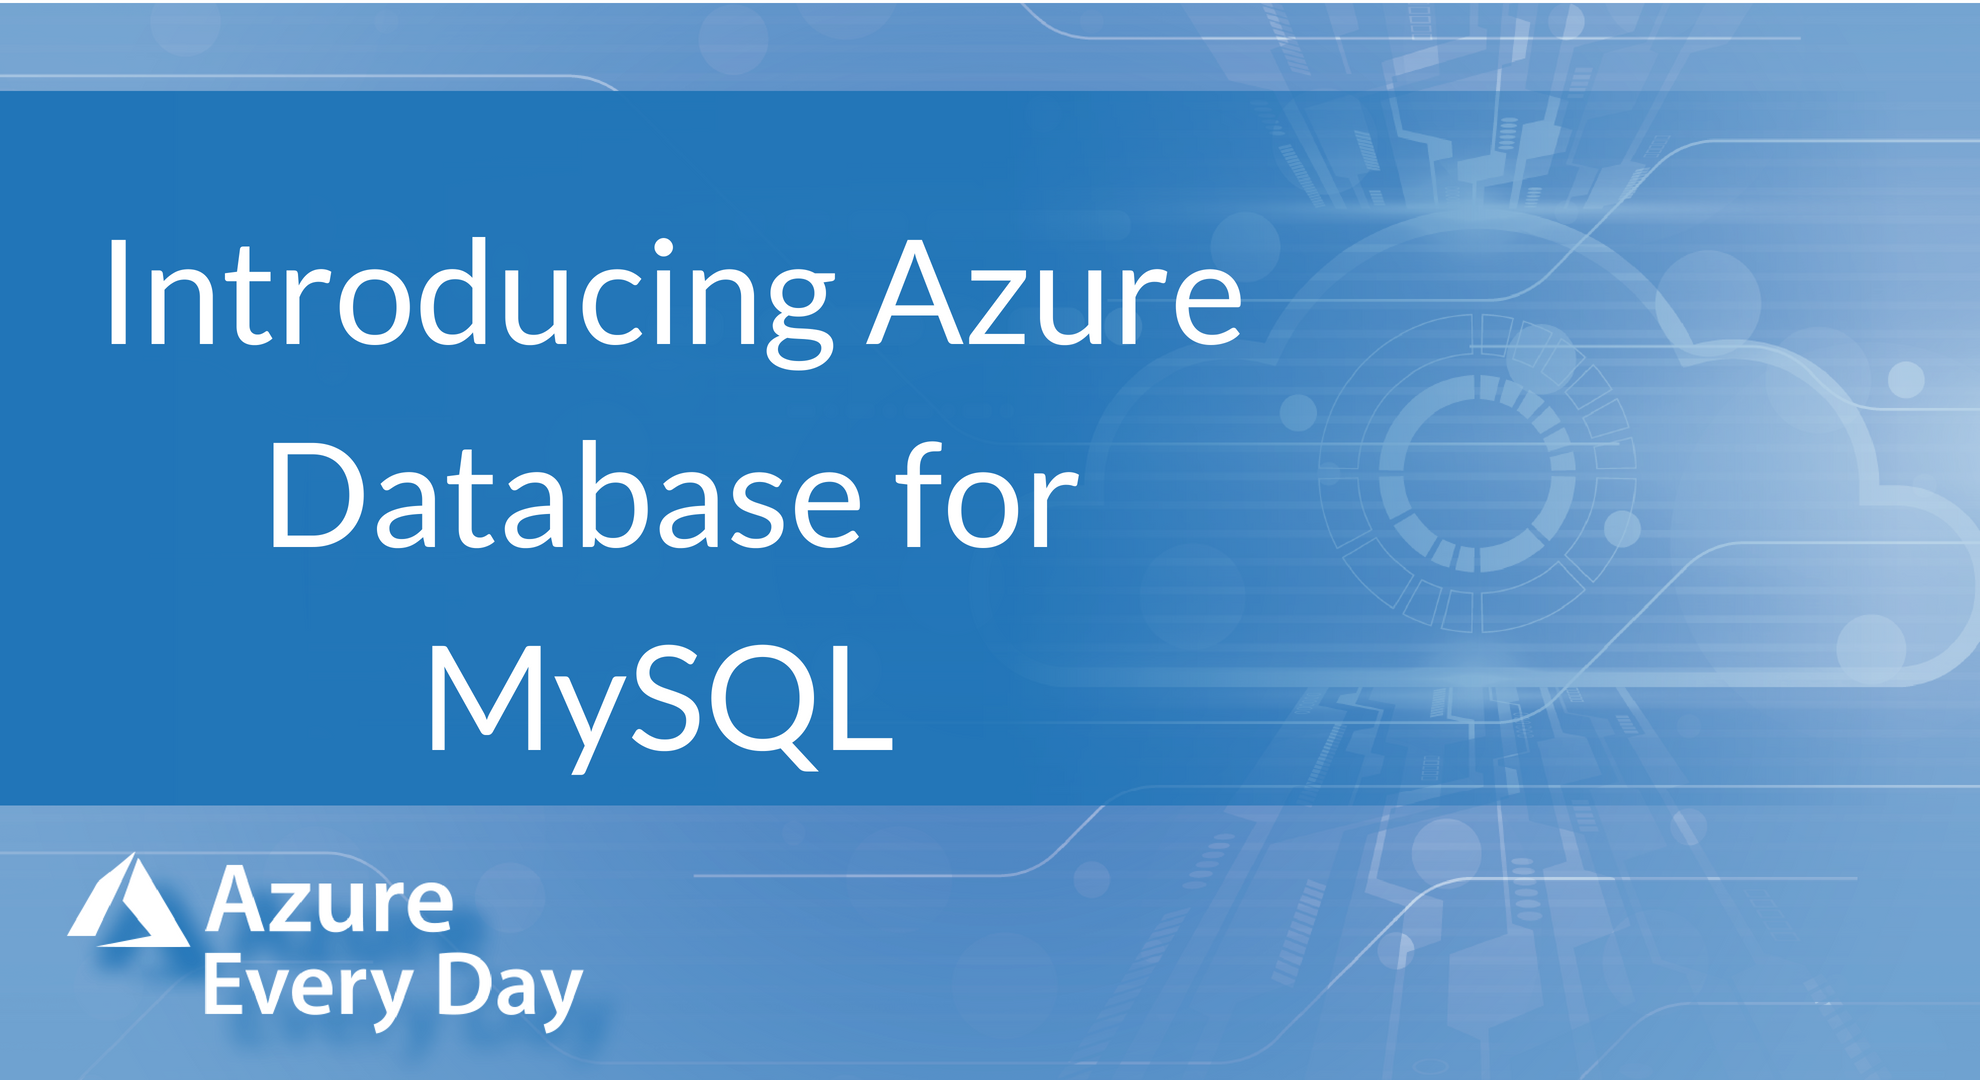 Introducing Azure Database for MySQL